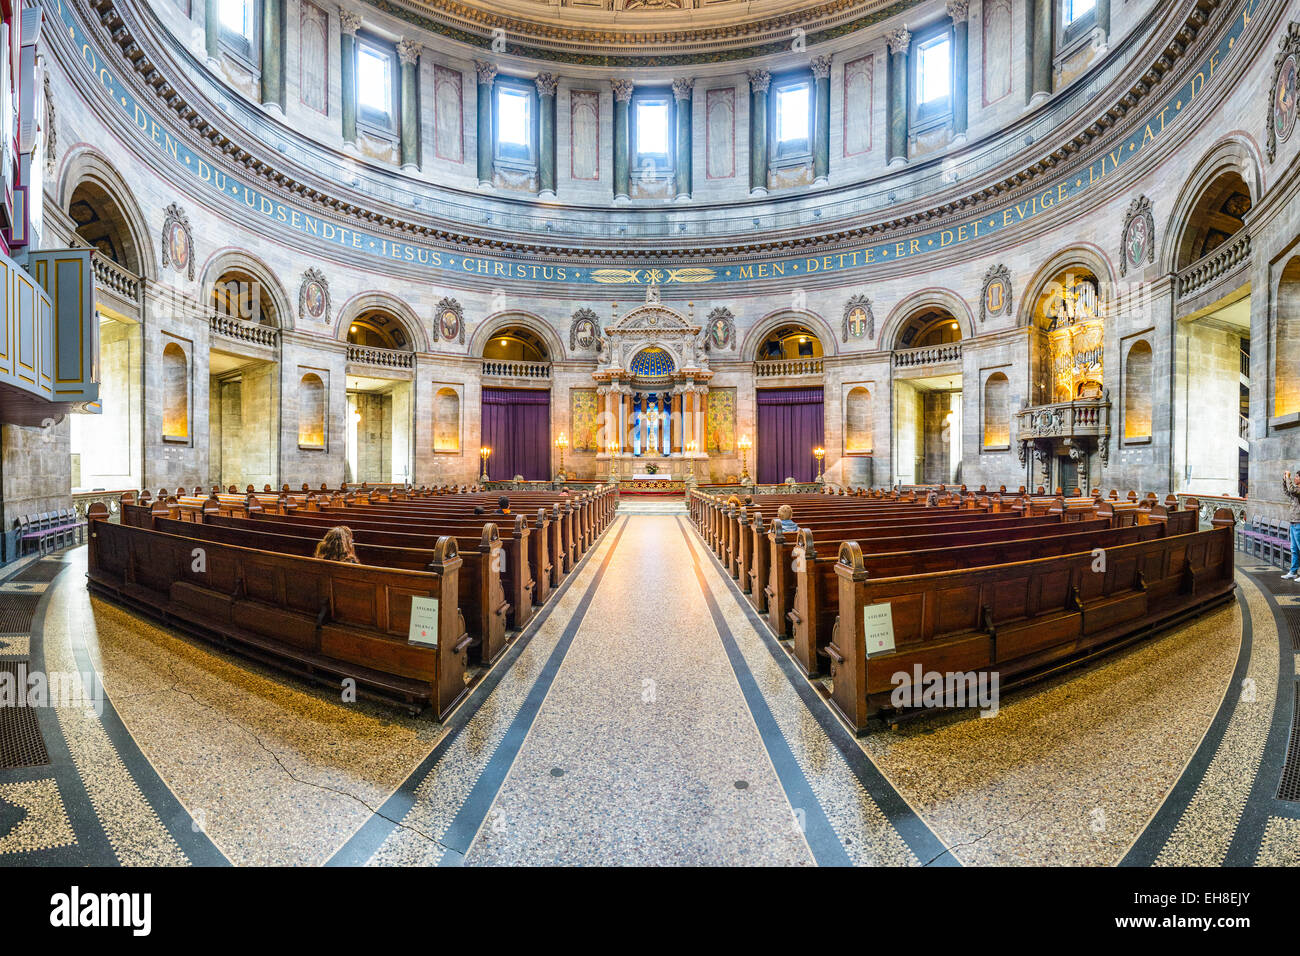 Frederik's Church interior. Popularly known as The Marble Church, it was completed in 1894. - Stock Image